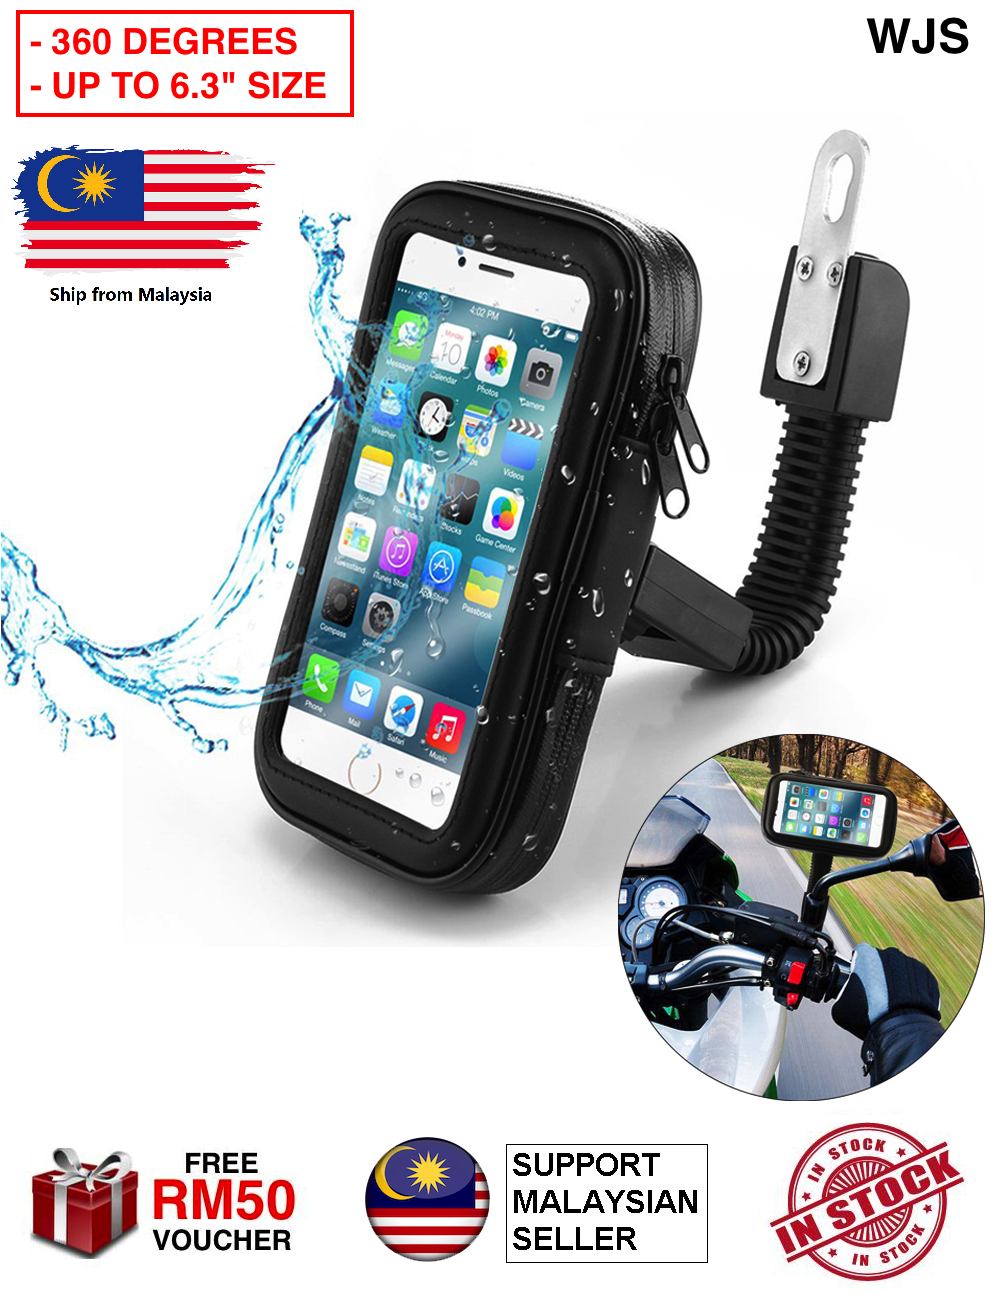 (LARGE SIZE UP TO 6.3) WJS 360 Degrees Bike Mount Universal Case Motorcycle Mount Handlebar Holder Bag Waterproof Phone Case Sand Dirt Resistant with Access Hole and Card Slots Motorcycle Mirror Phone Holder Rotatable FULL BLACK RED [FREE RM 50 VOUCHER]